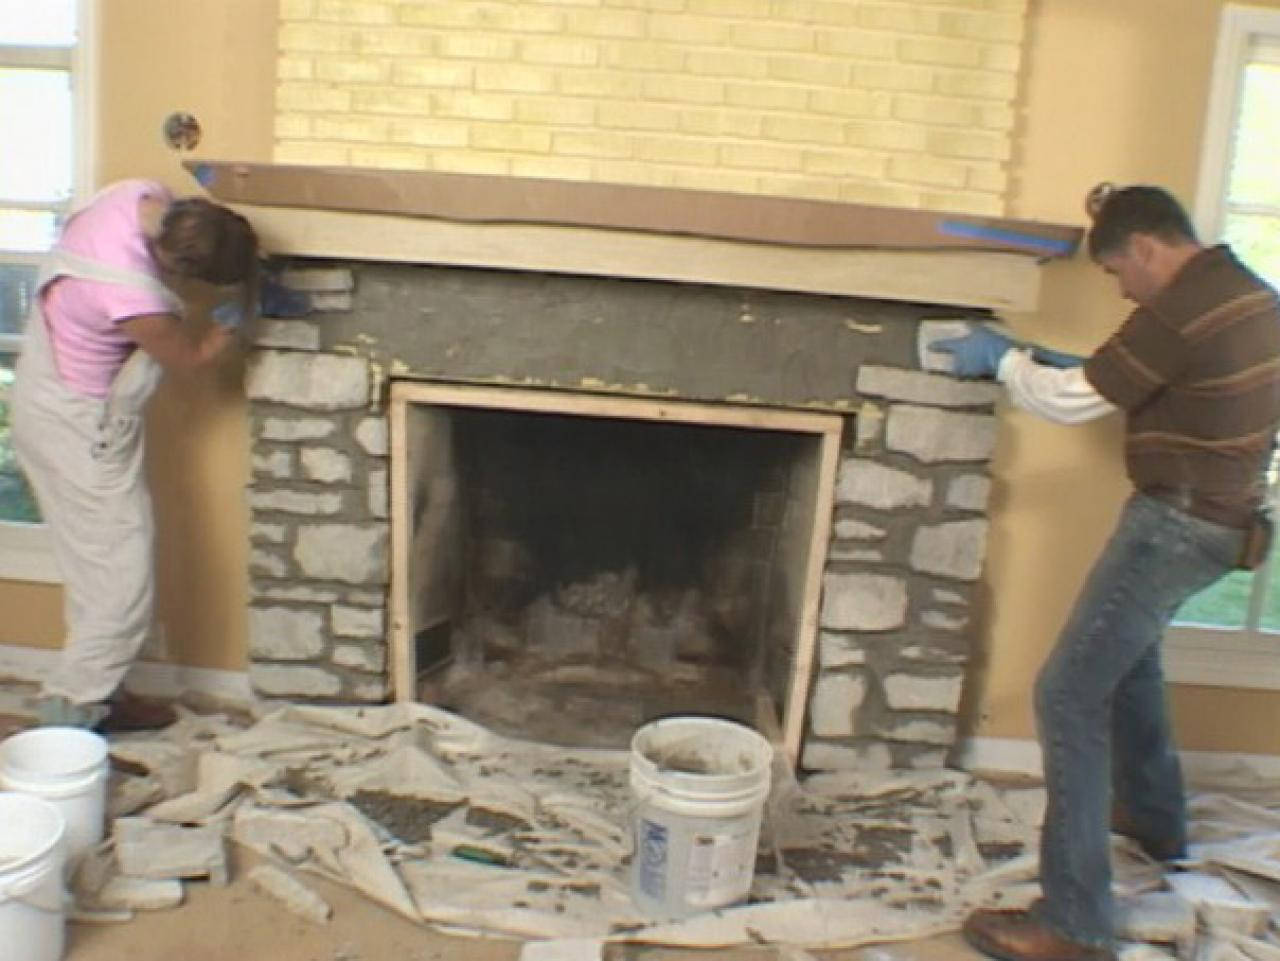 Fireplace Stone Install A Fireplace Mantel And Add Stone Veneer Facing How Tos Diy